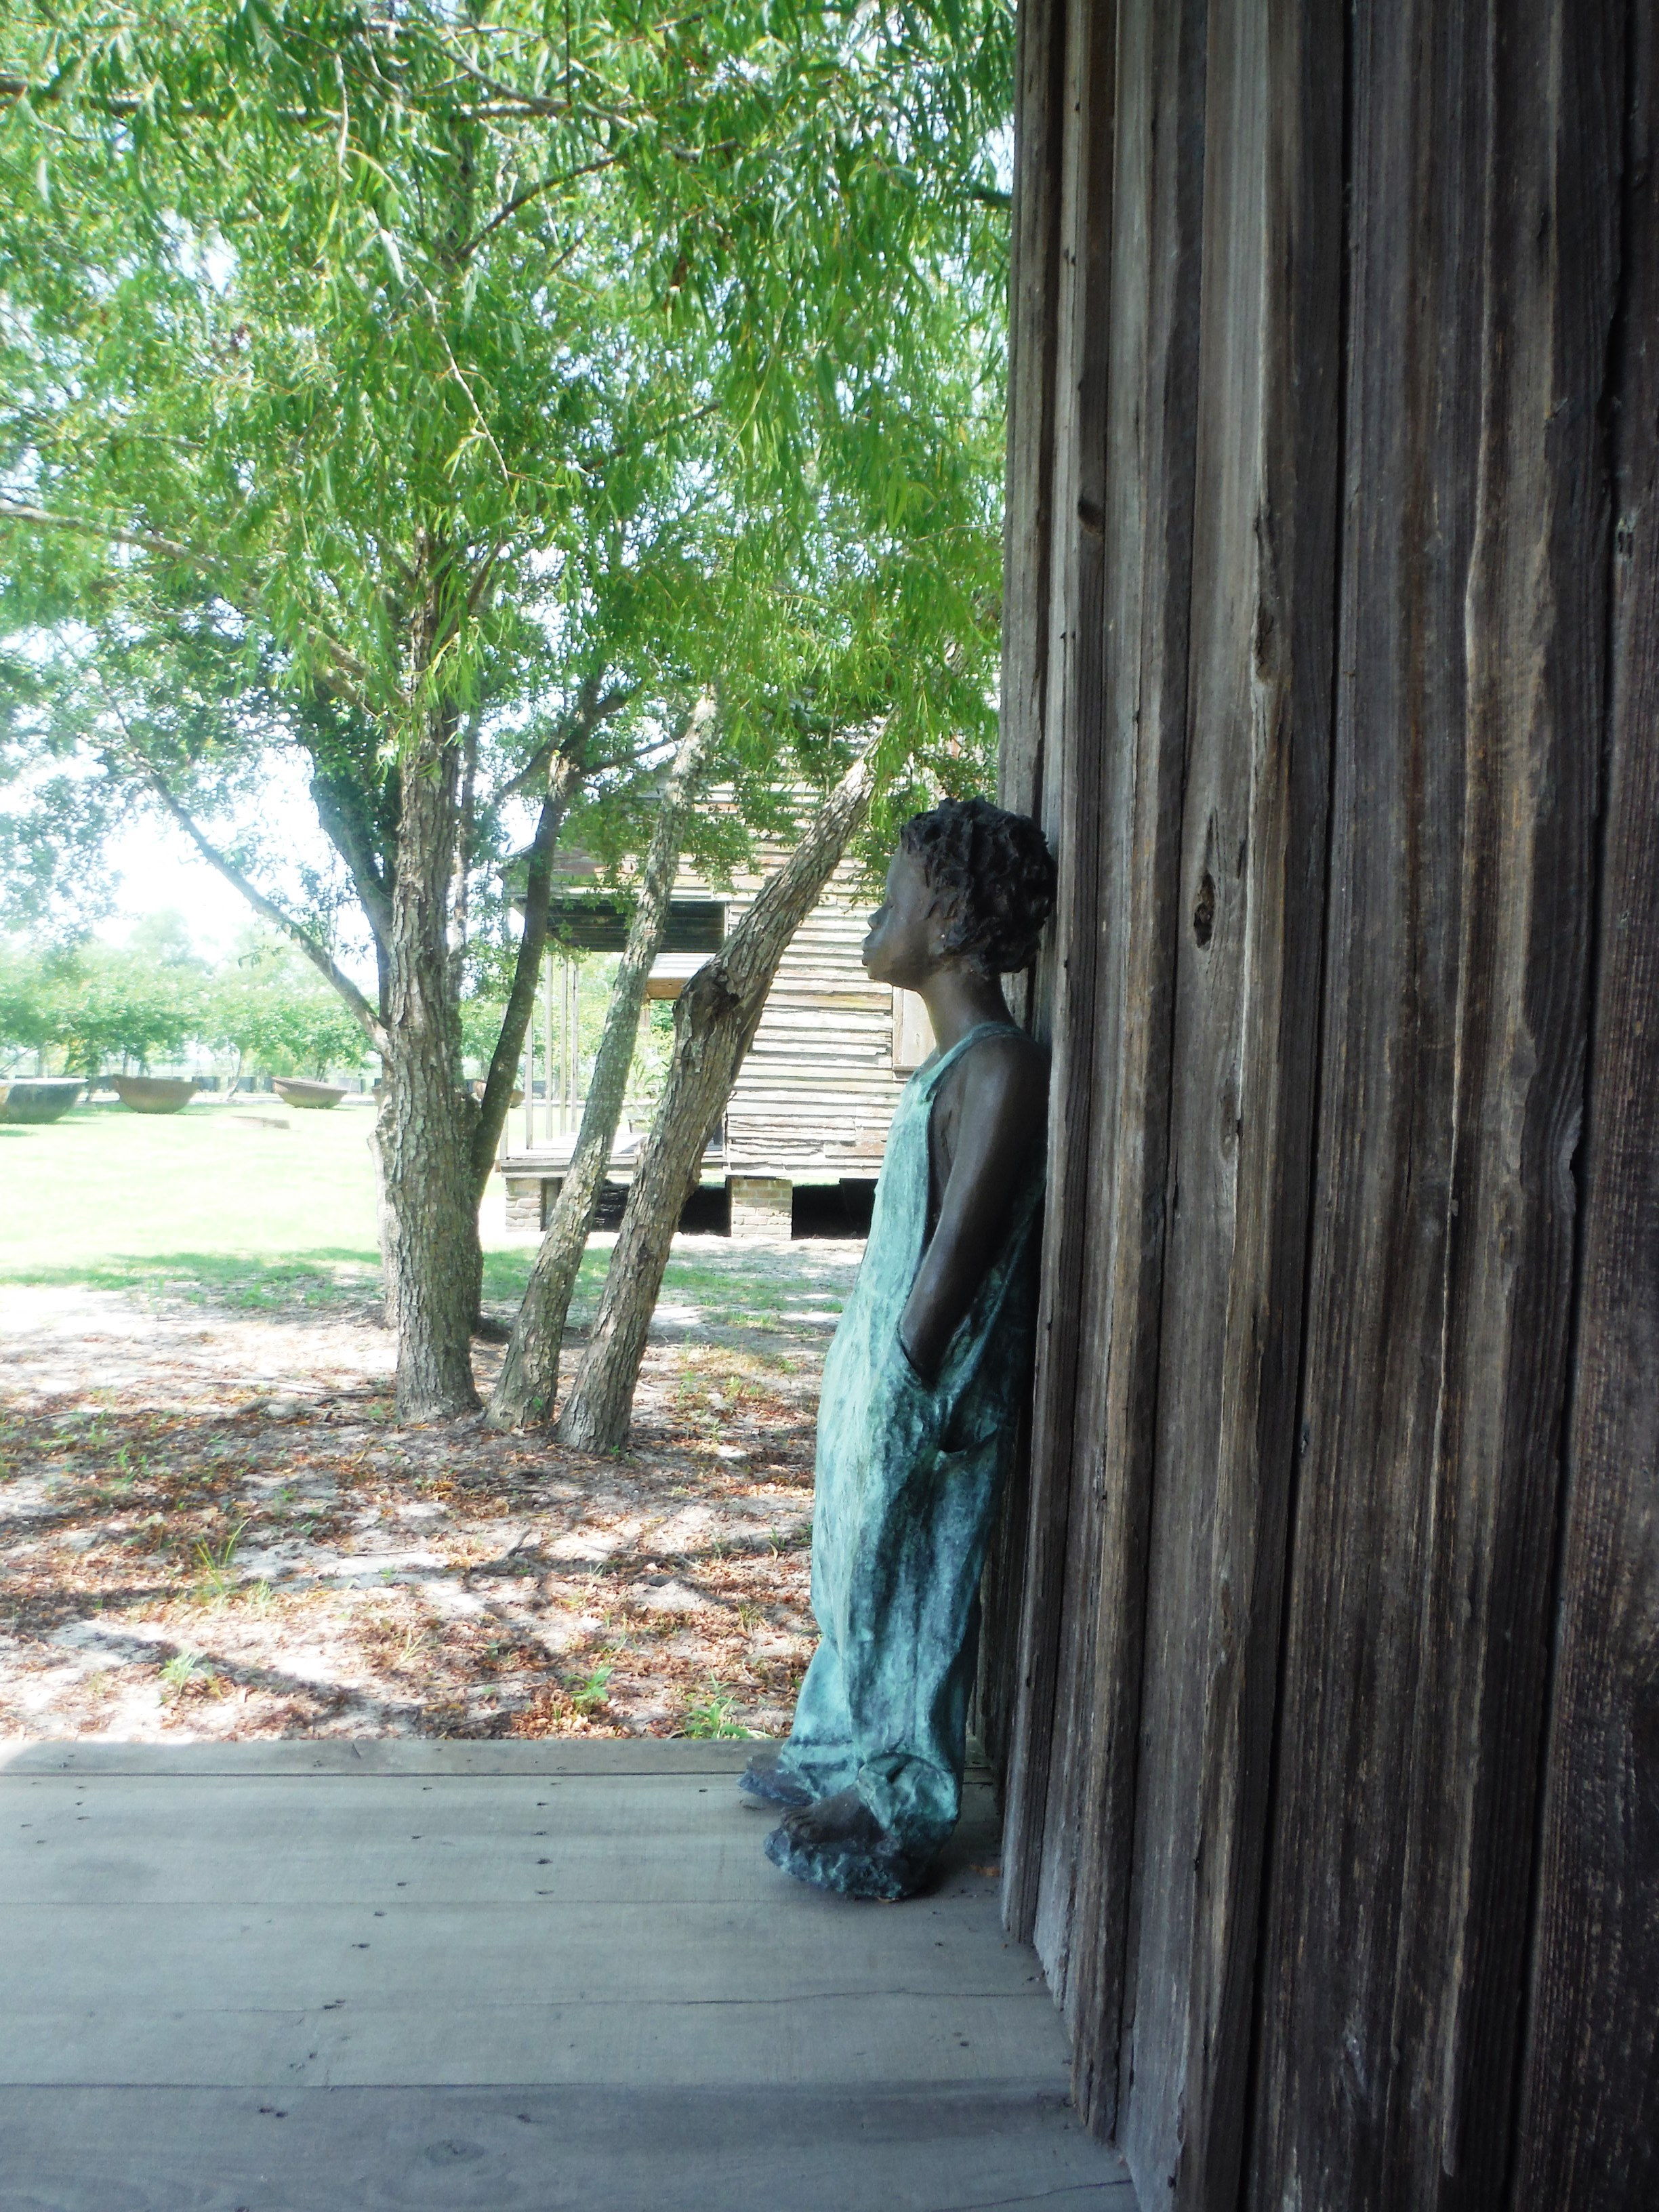 A bronze statute depicts cabin life as it might have been for a young slave in the mid-19th century.